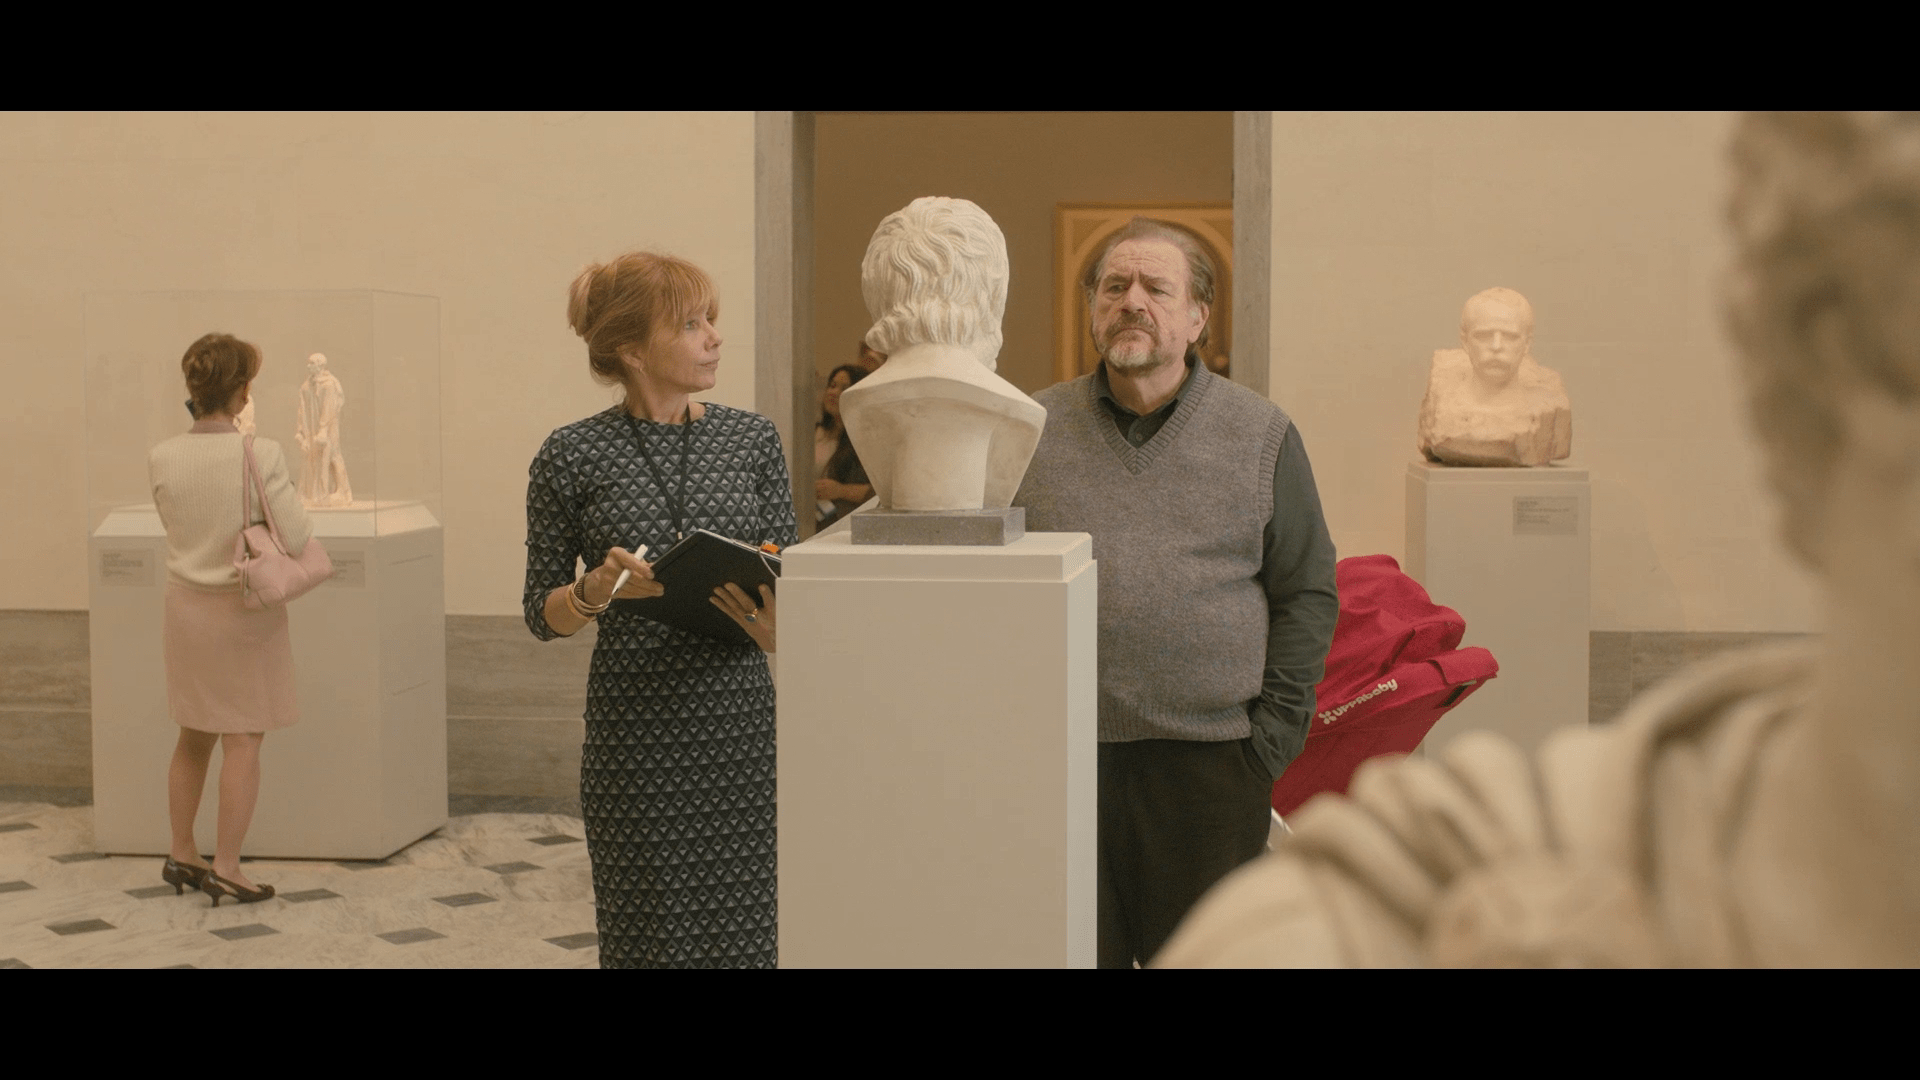 The Etruscan Smile Blu-ray Review